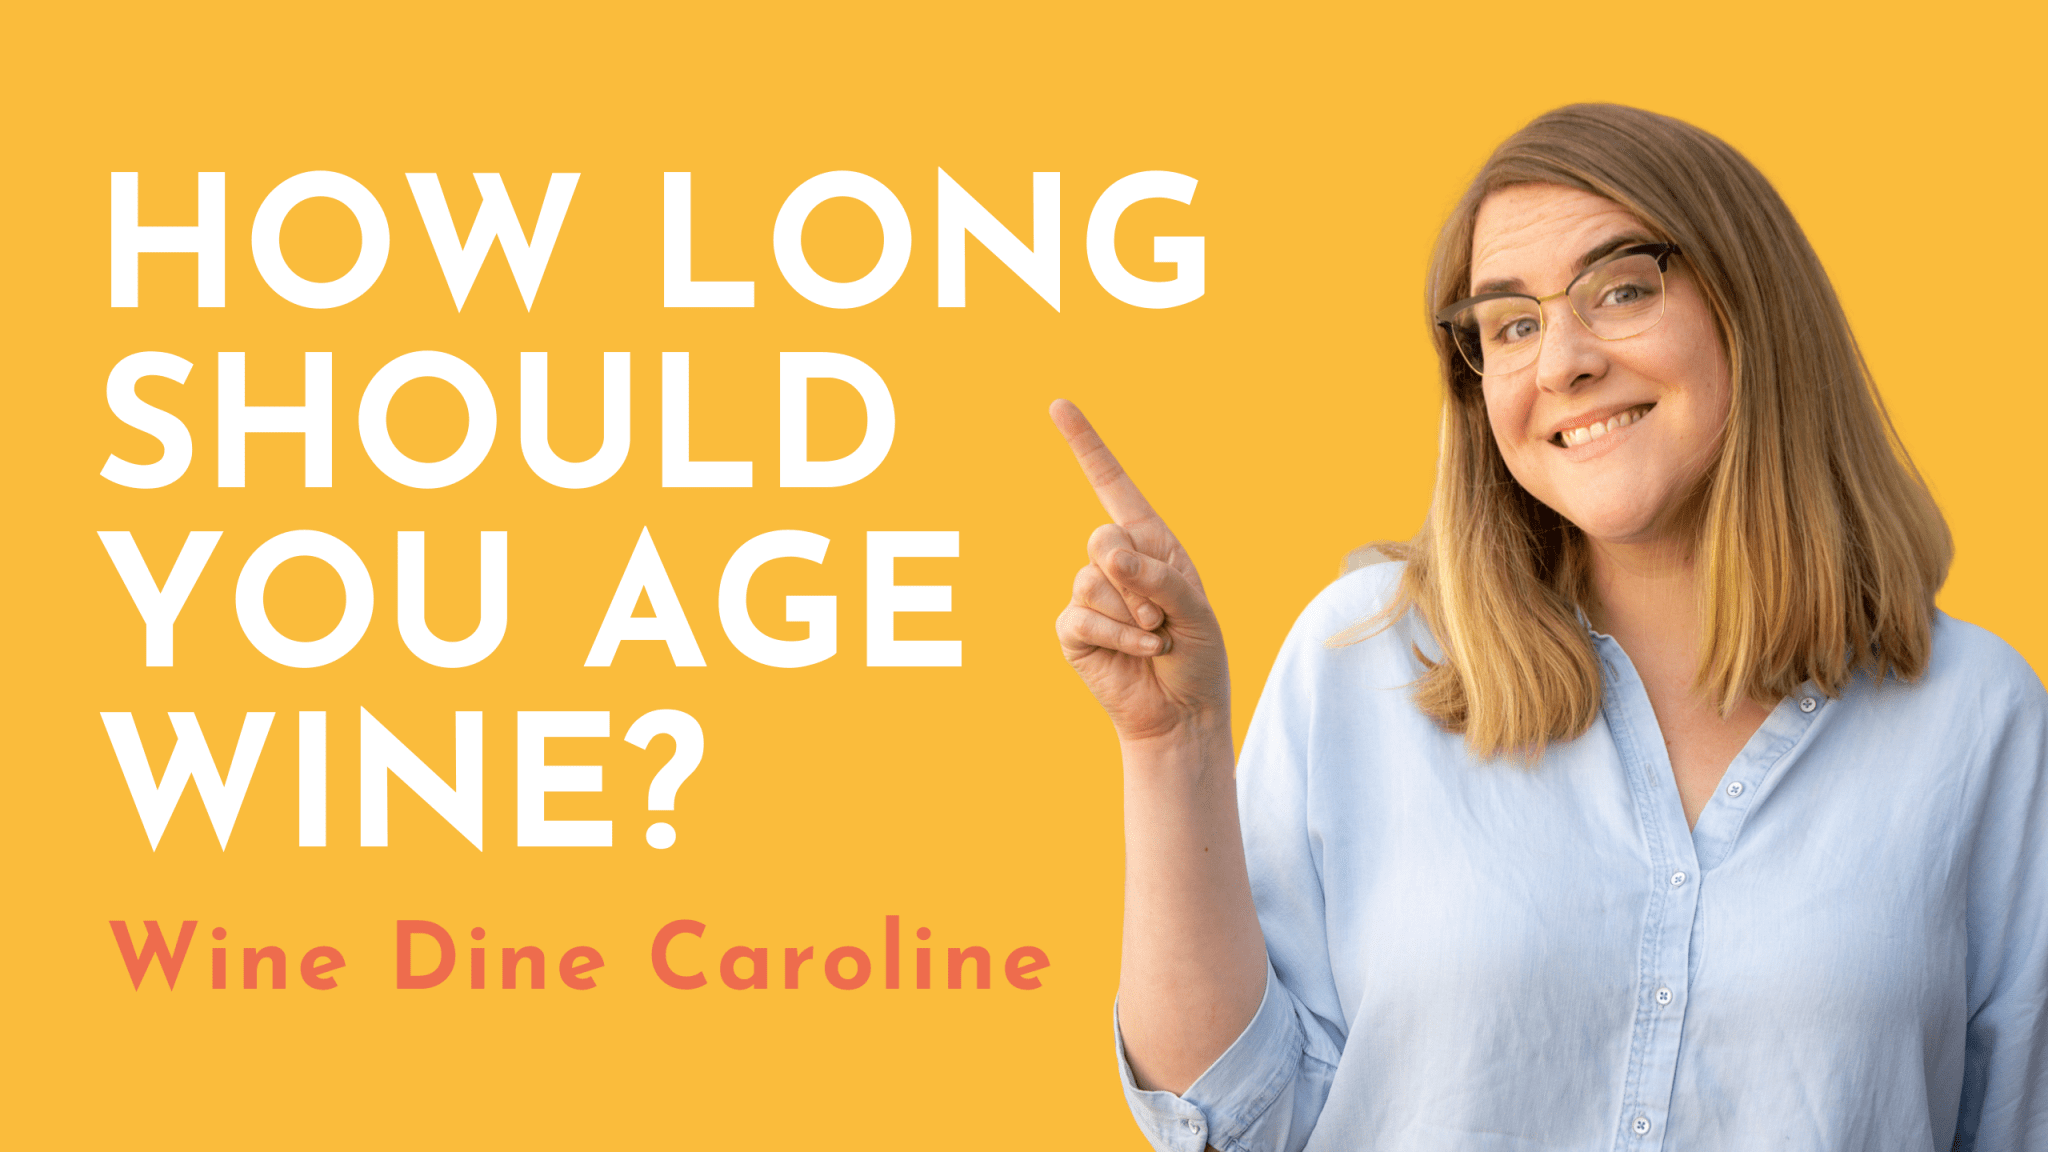 how long should you age wine?